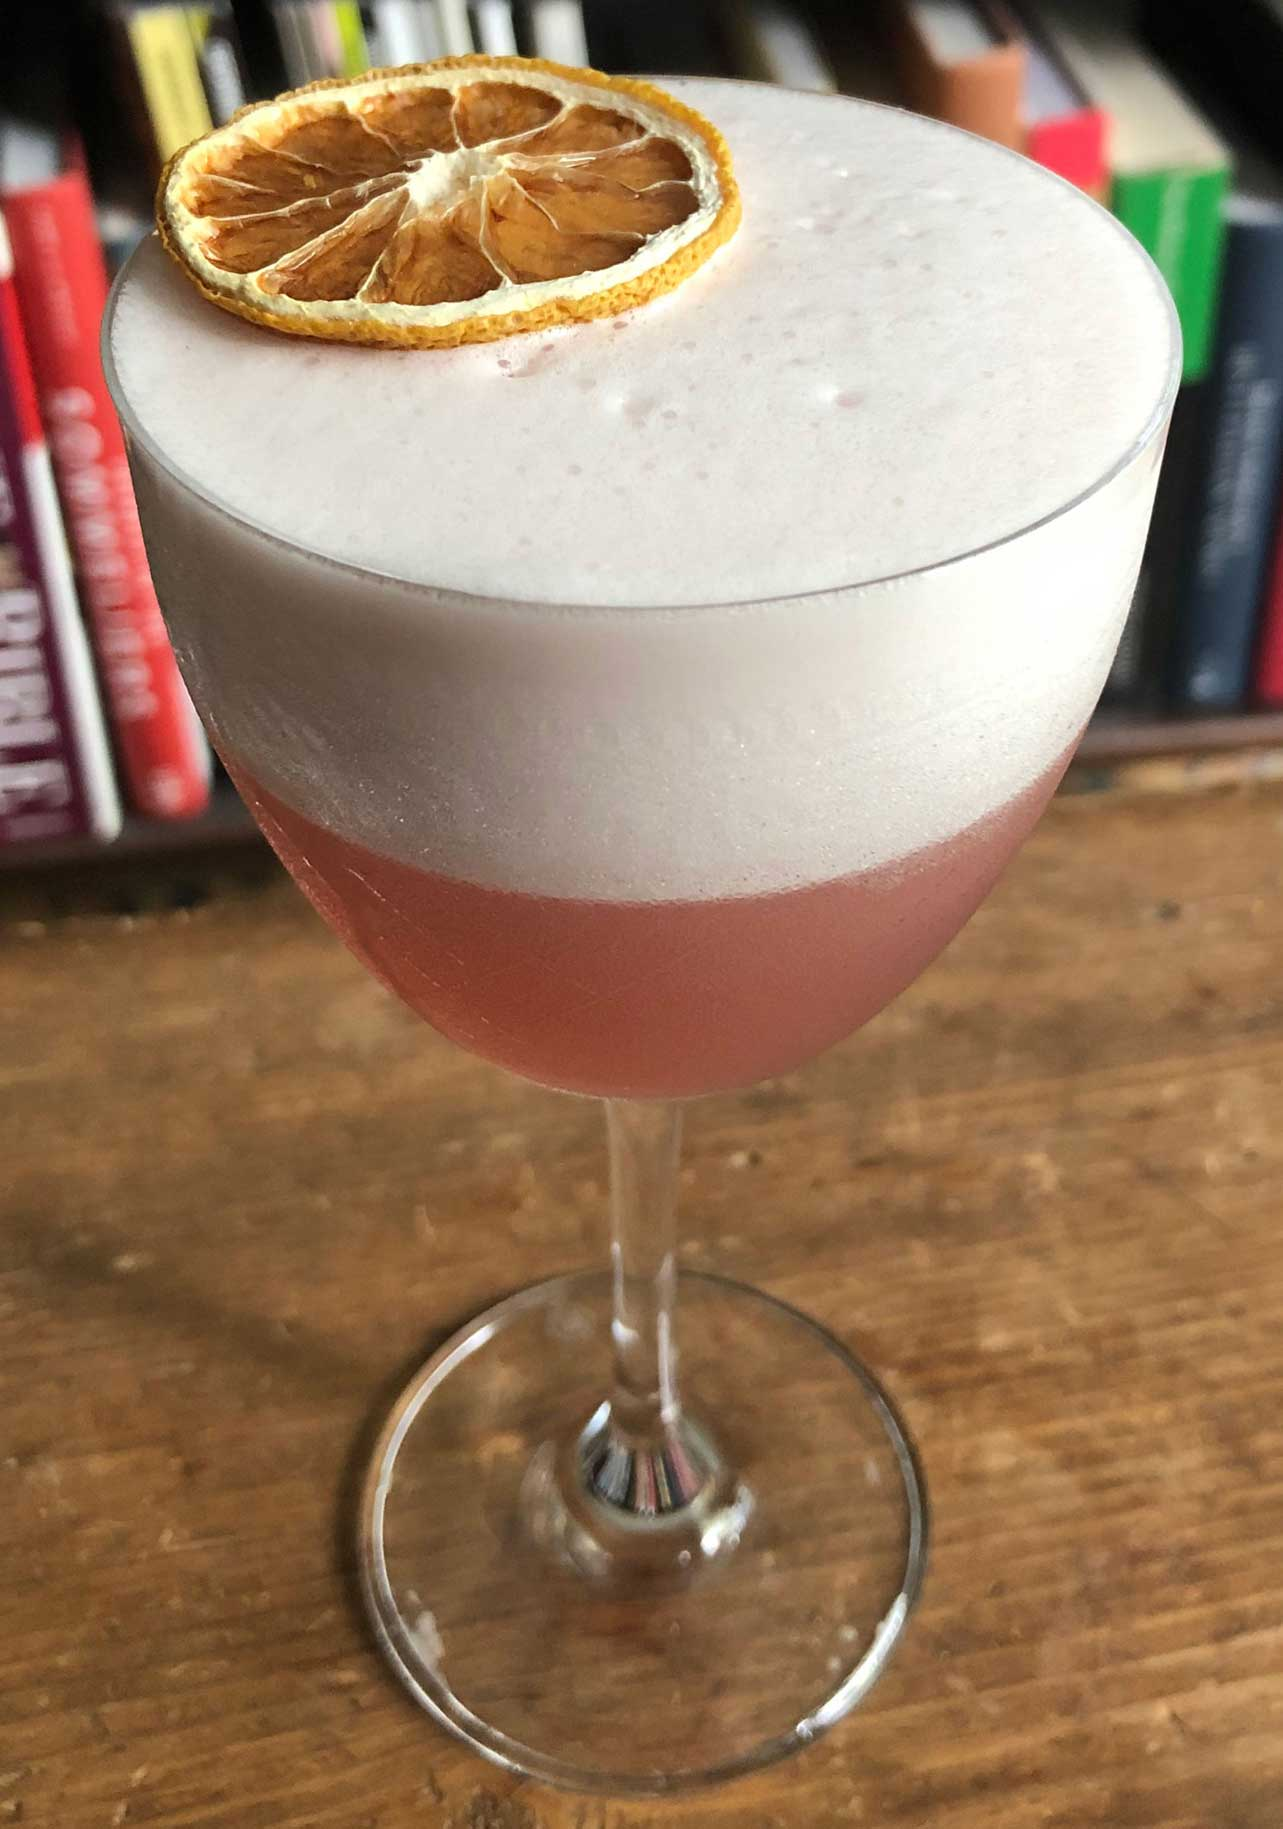 An example of the Rosa Sour, the mixed drink (sour) featuring Cocchi Americano Rosa, egg white, lemon juice, and simple syrup; photo by Lee Edwards